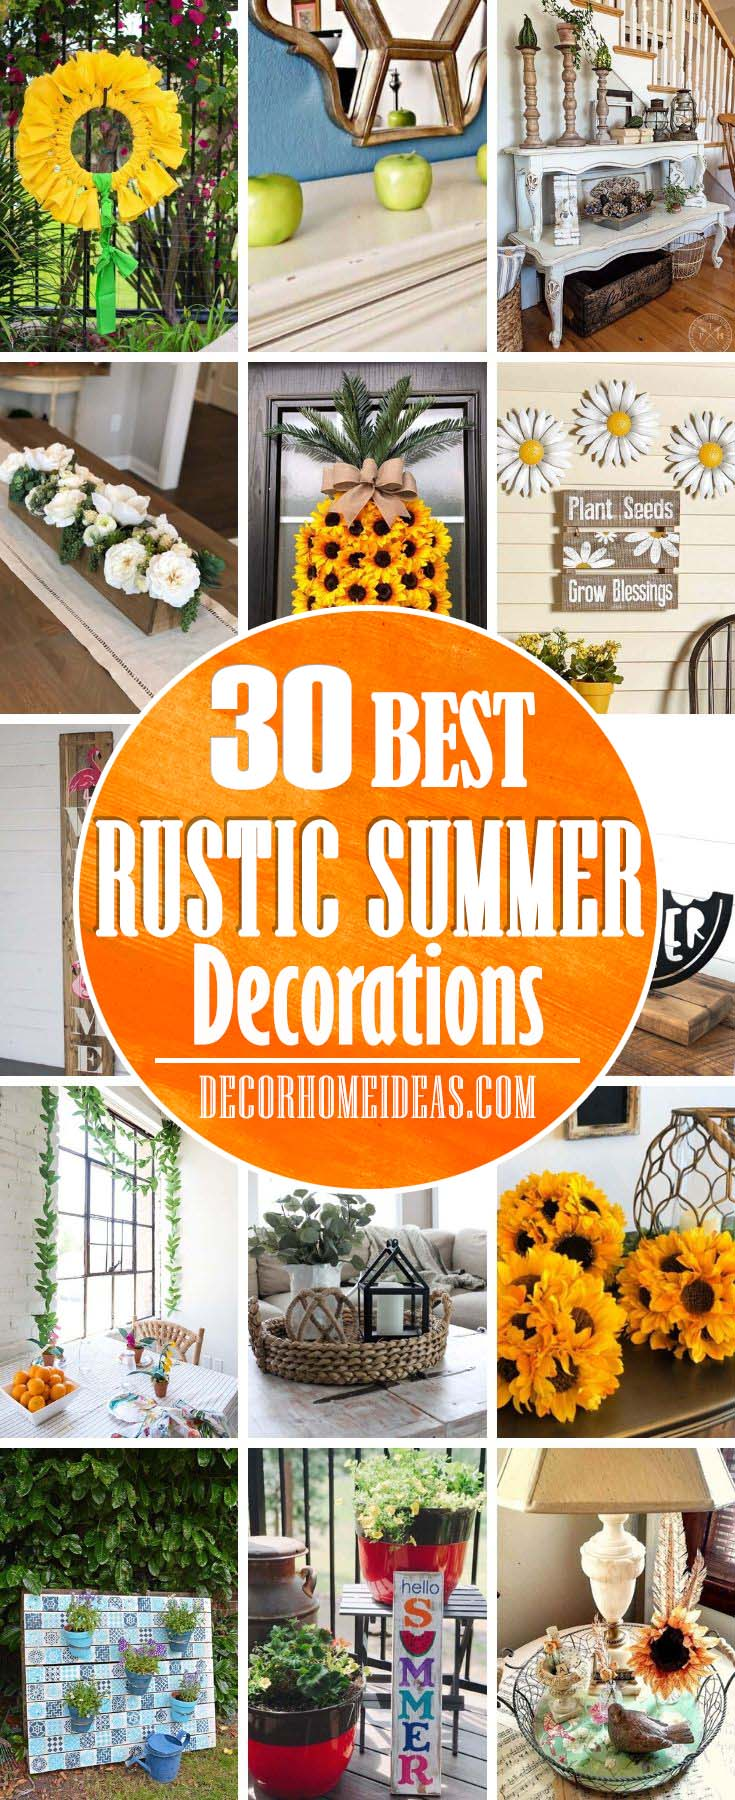 Rustic Summer Decorations. Create summer mood in your home with these creative and colorful decorations and ideas. #summer #decor #rustic #decorhomeideas